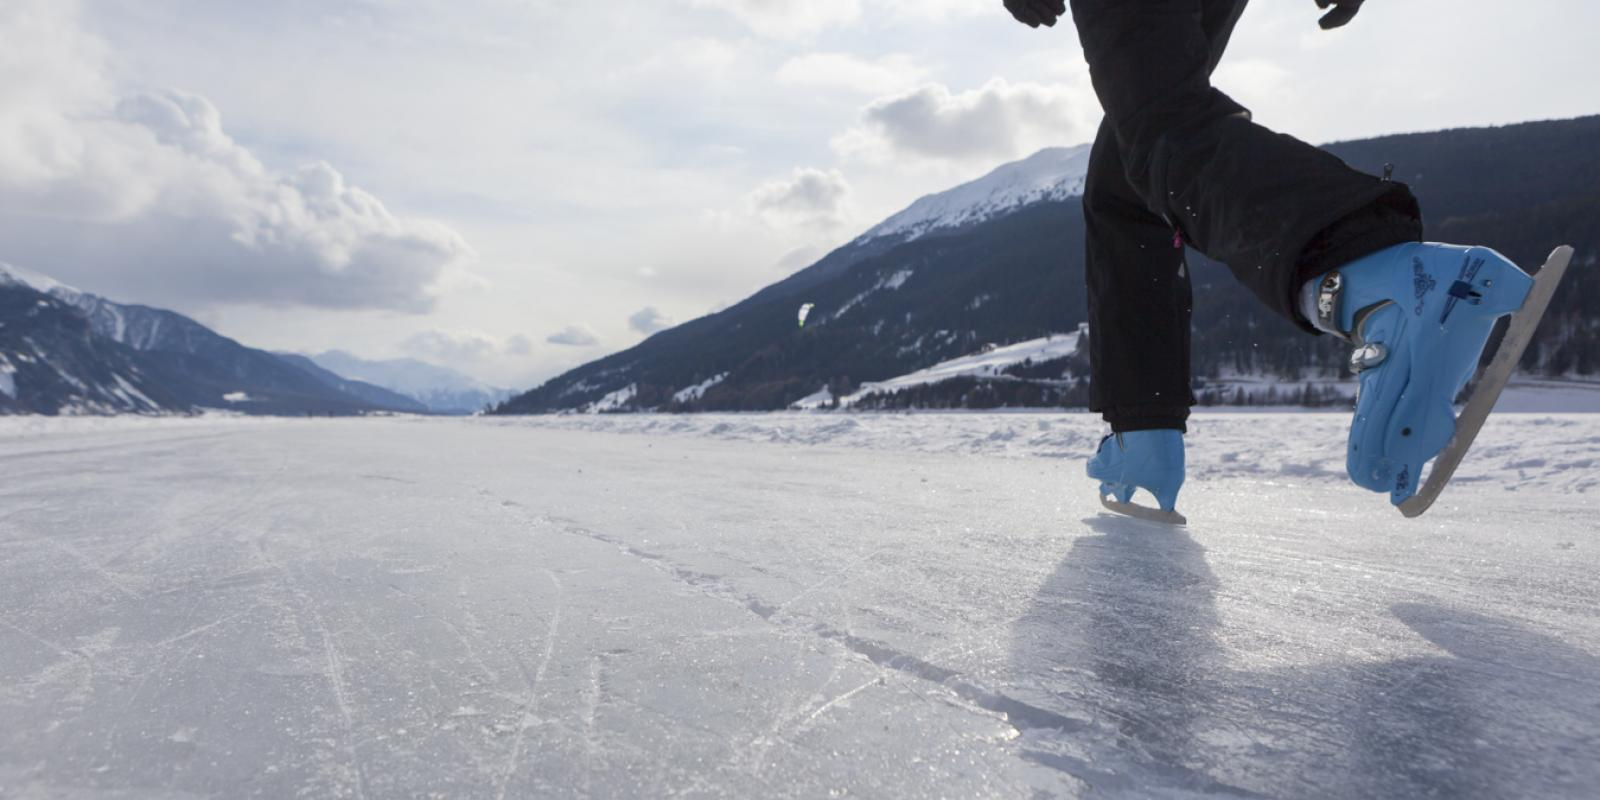 Ice skating on the Resia lake